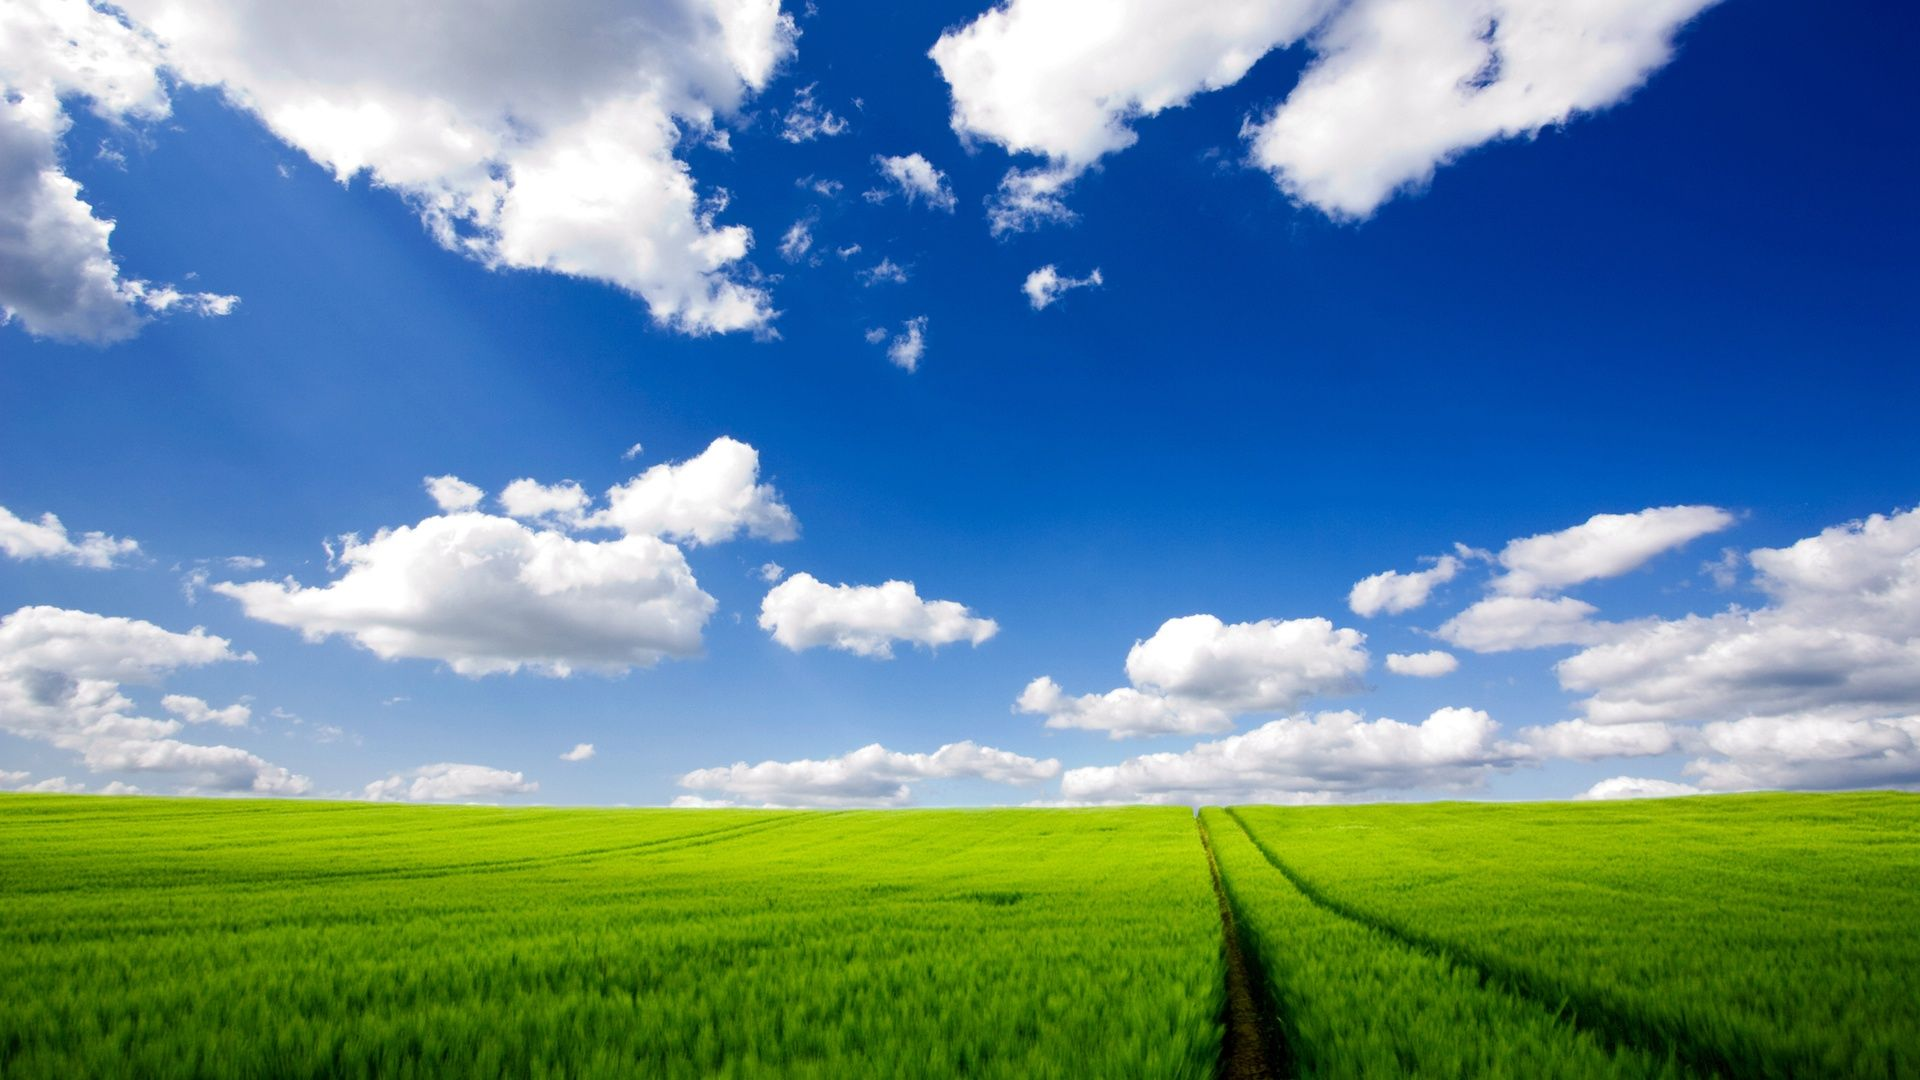 Windows Xp Wallpapers Top Free Windows Xp Backgrounds